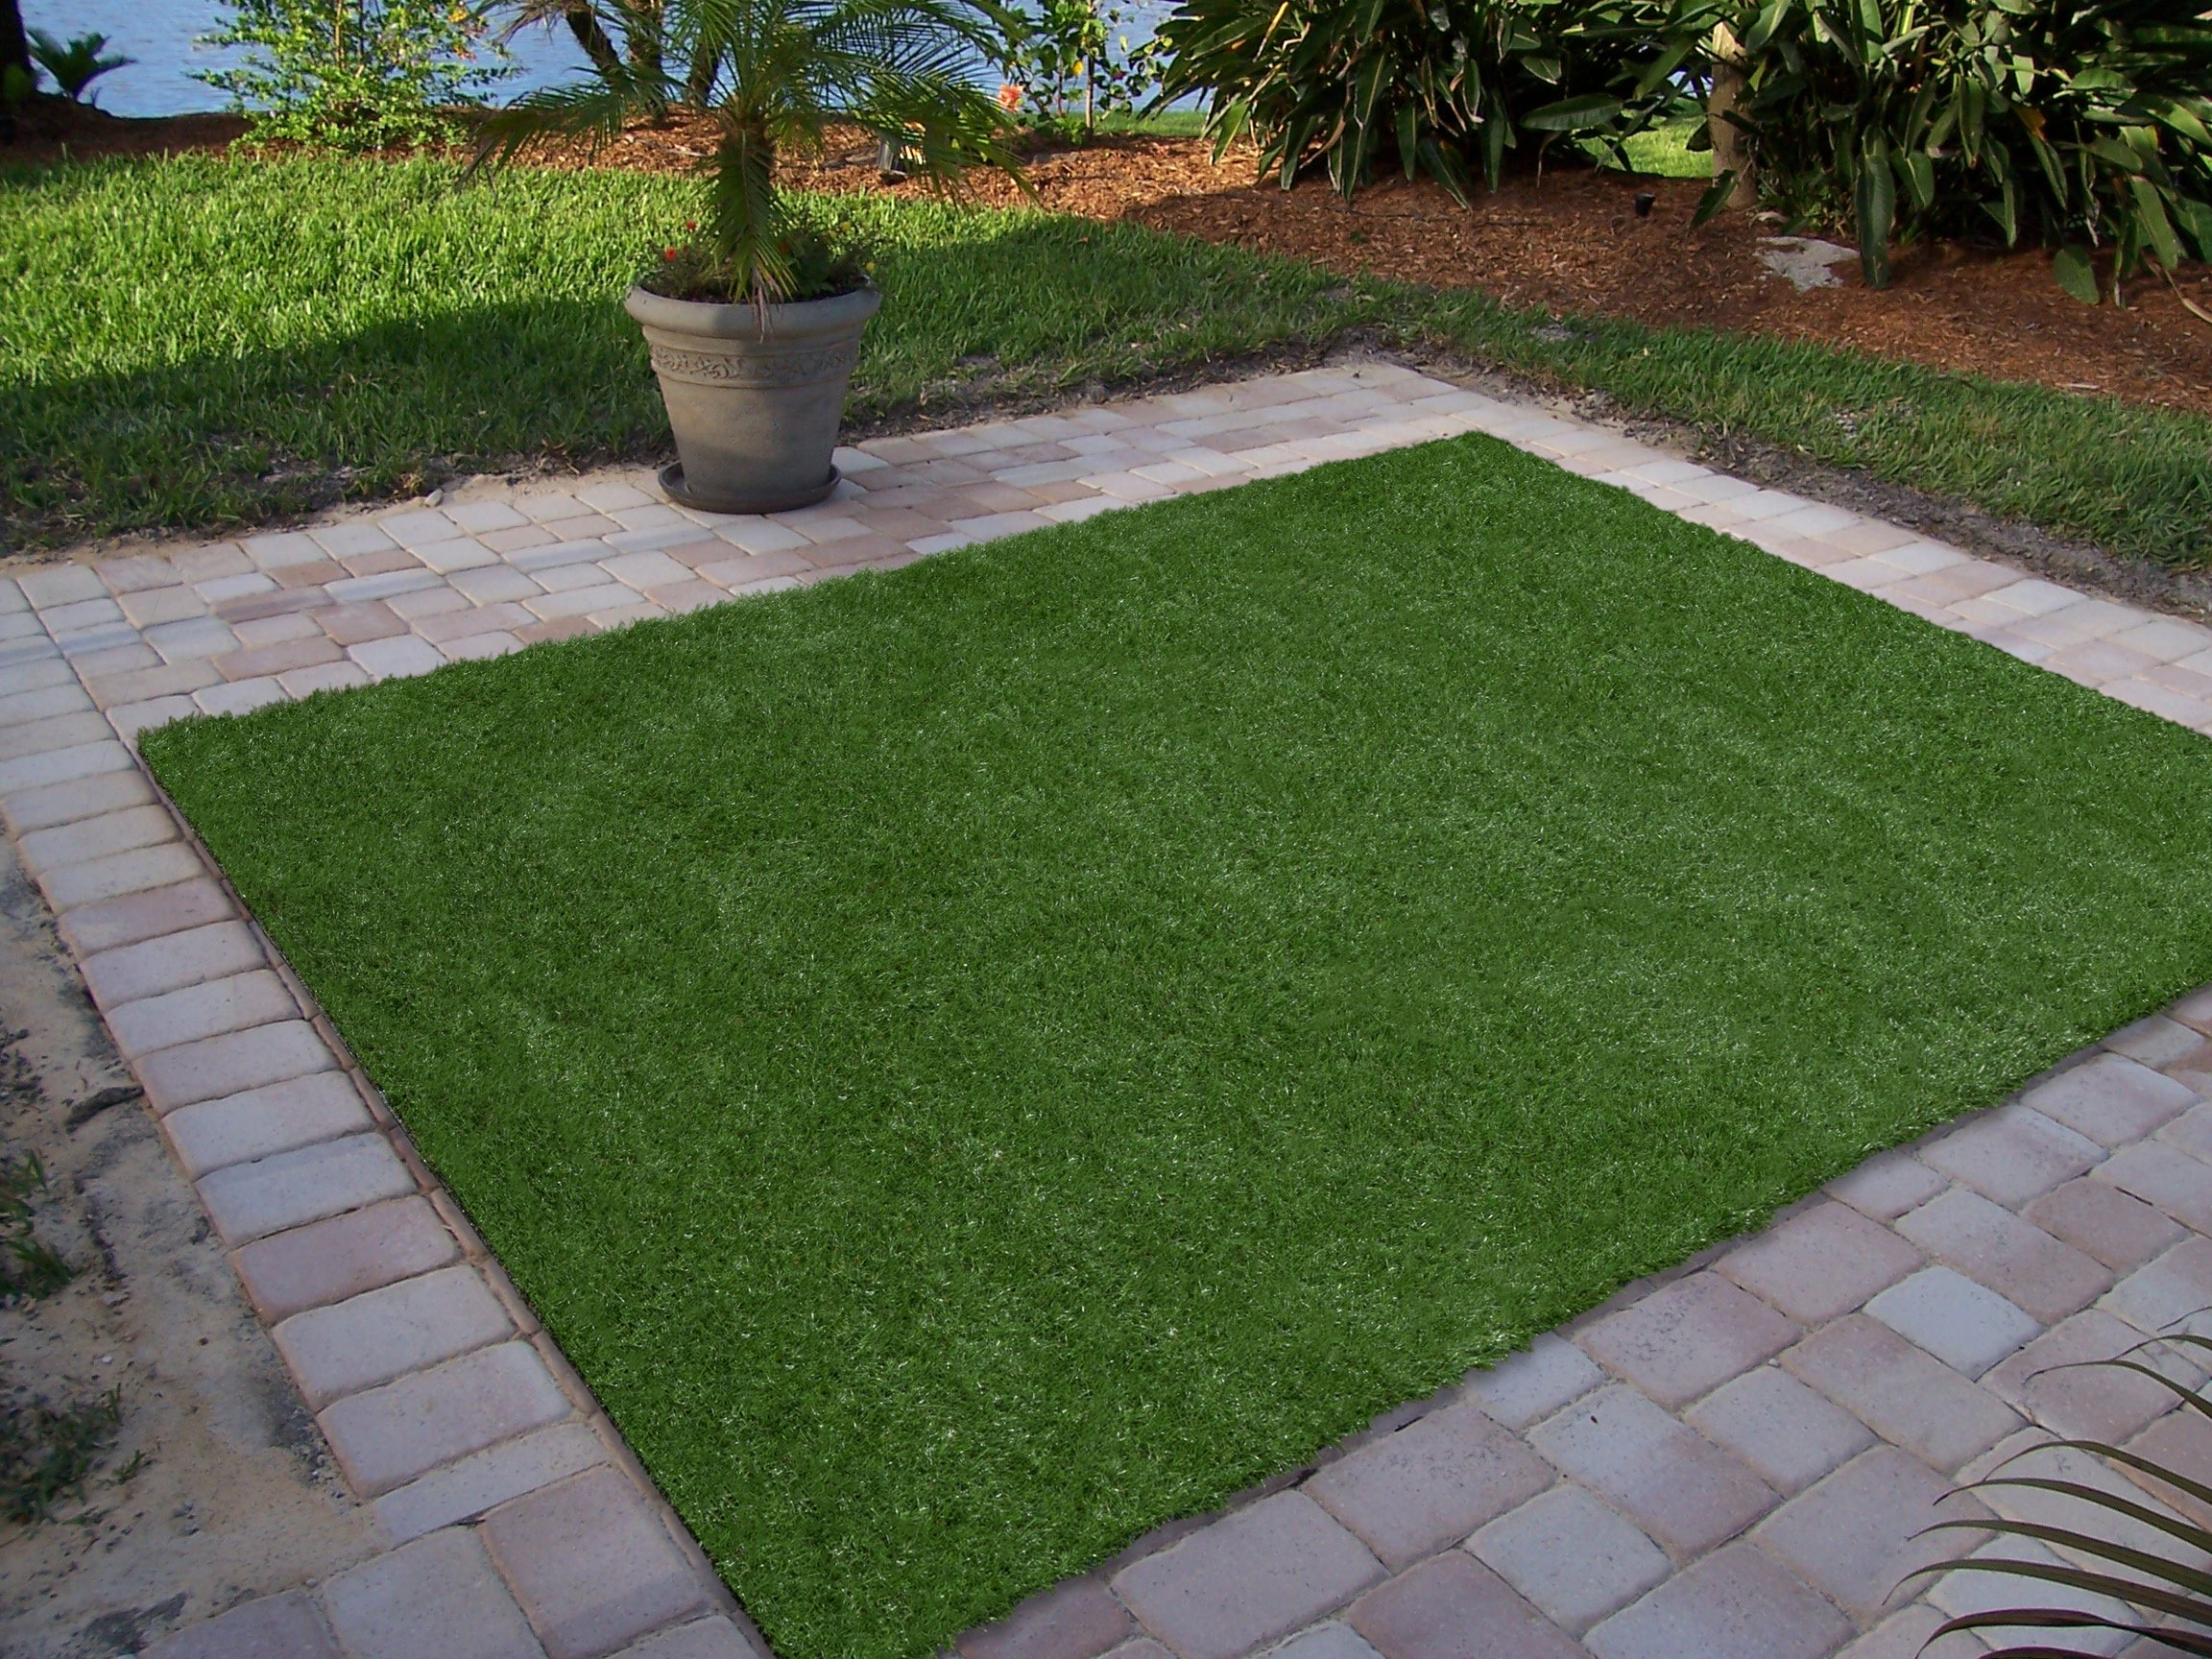 Ottomanson Garden Collection Indoor/Outdoor Artificial Solid Grass Design Area Rug X Green Turf, 6'6'' X 9'3''